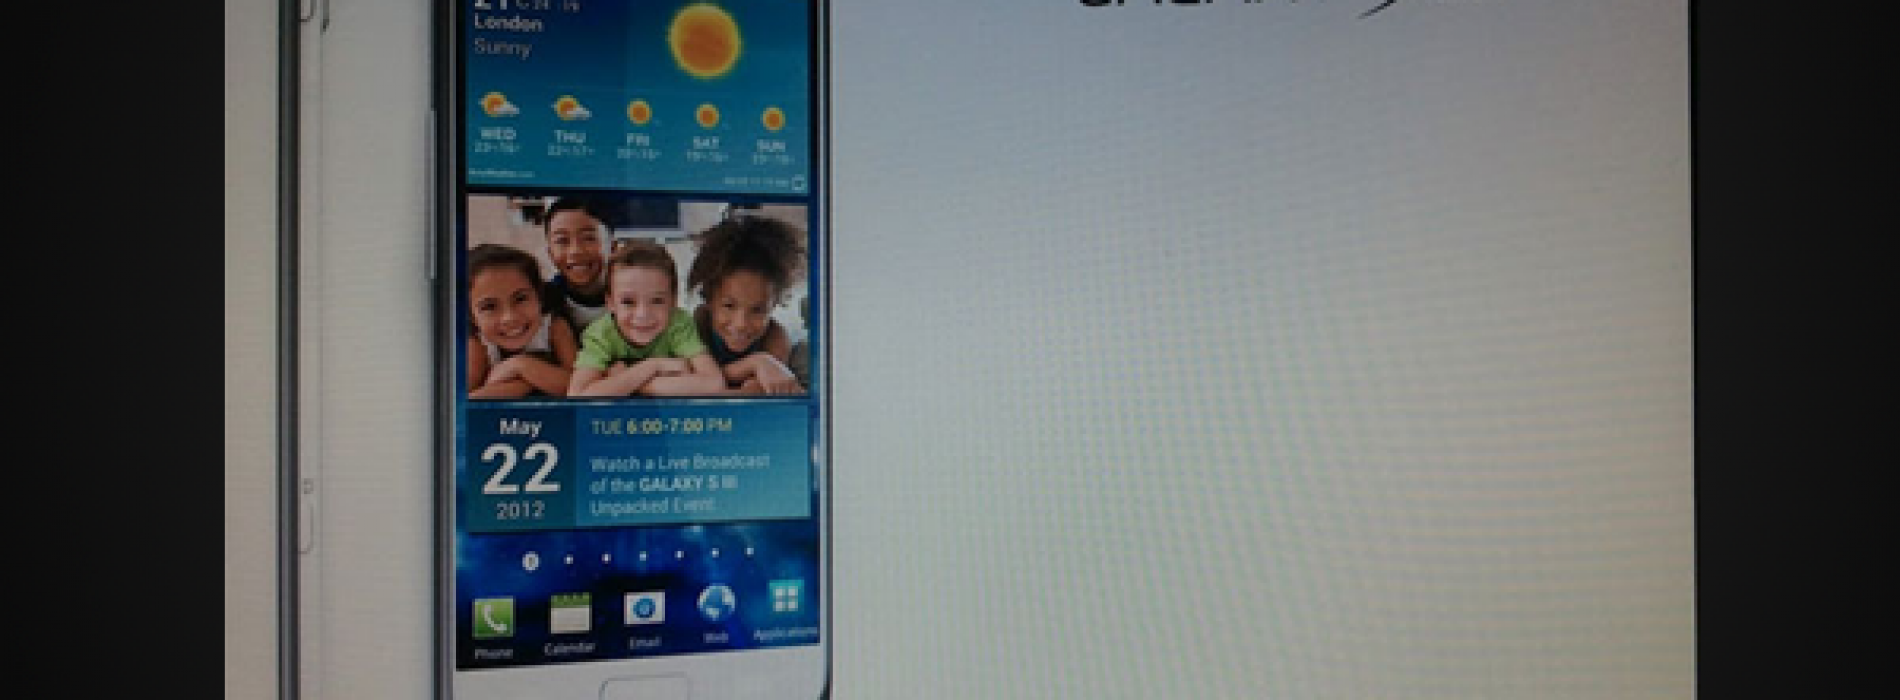 Latest leaked Galaxy S III render hints at May 22 launch